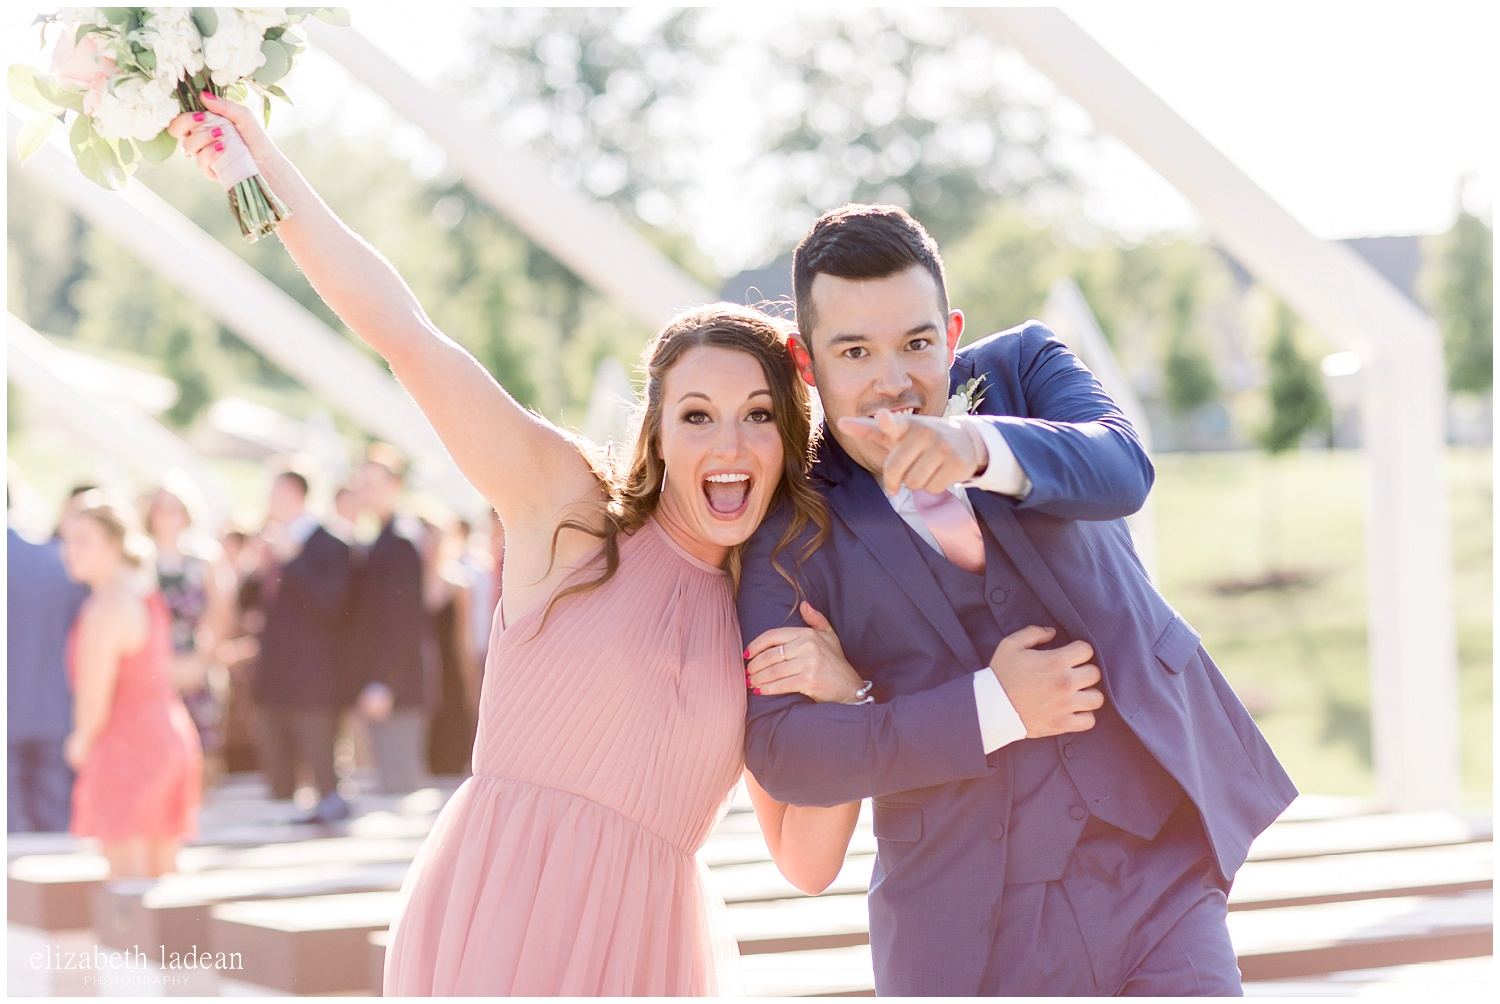 -behind-the-scenes-of-a-wedding-photographer-2018-elizabeth-ladean-photography-photo_3501.jpg